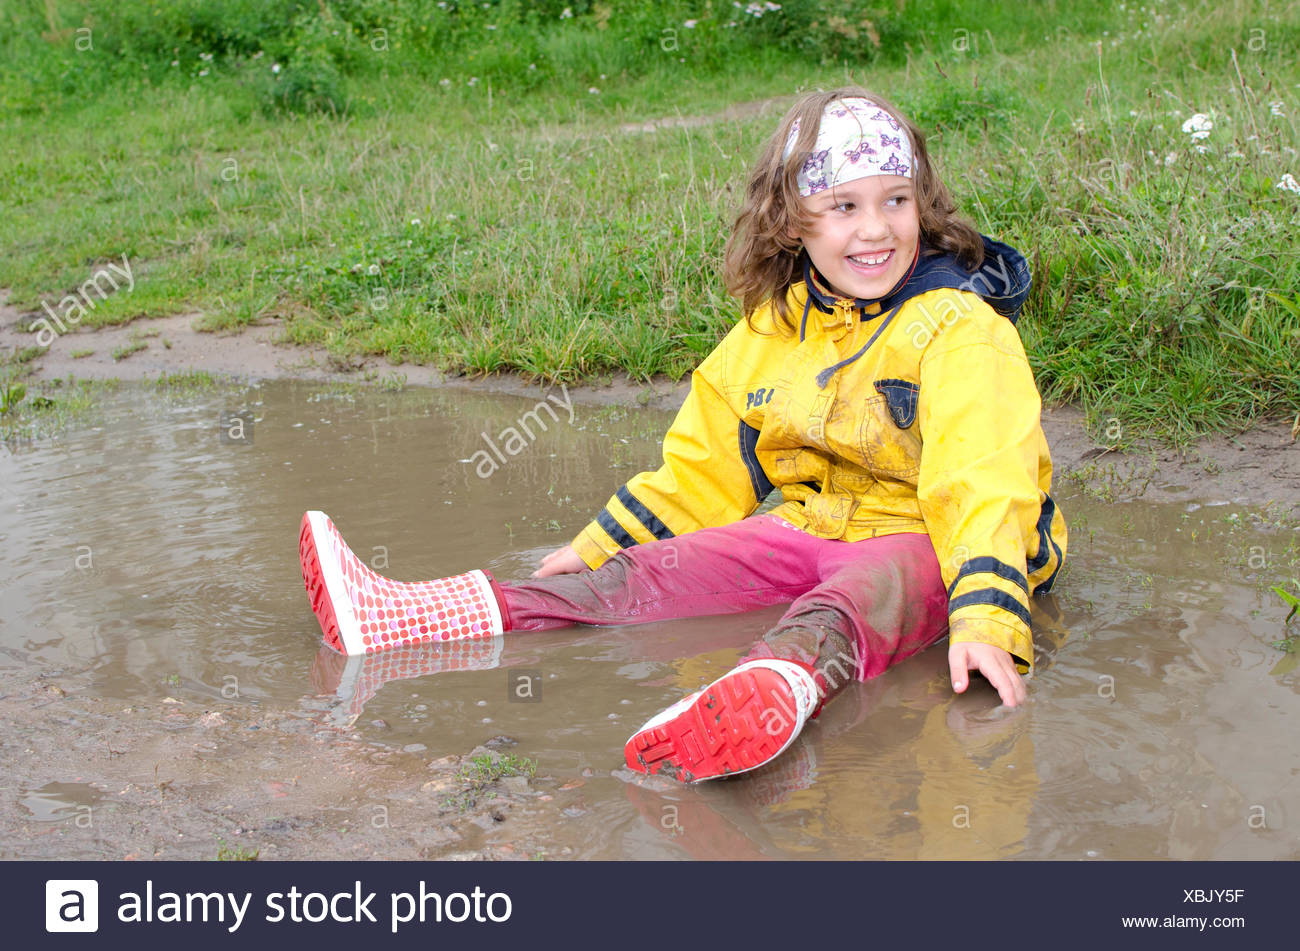 Girl in the puddle - Stock Image